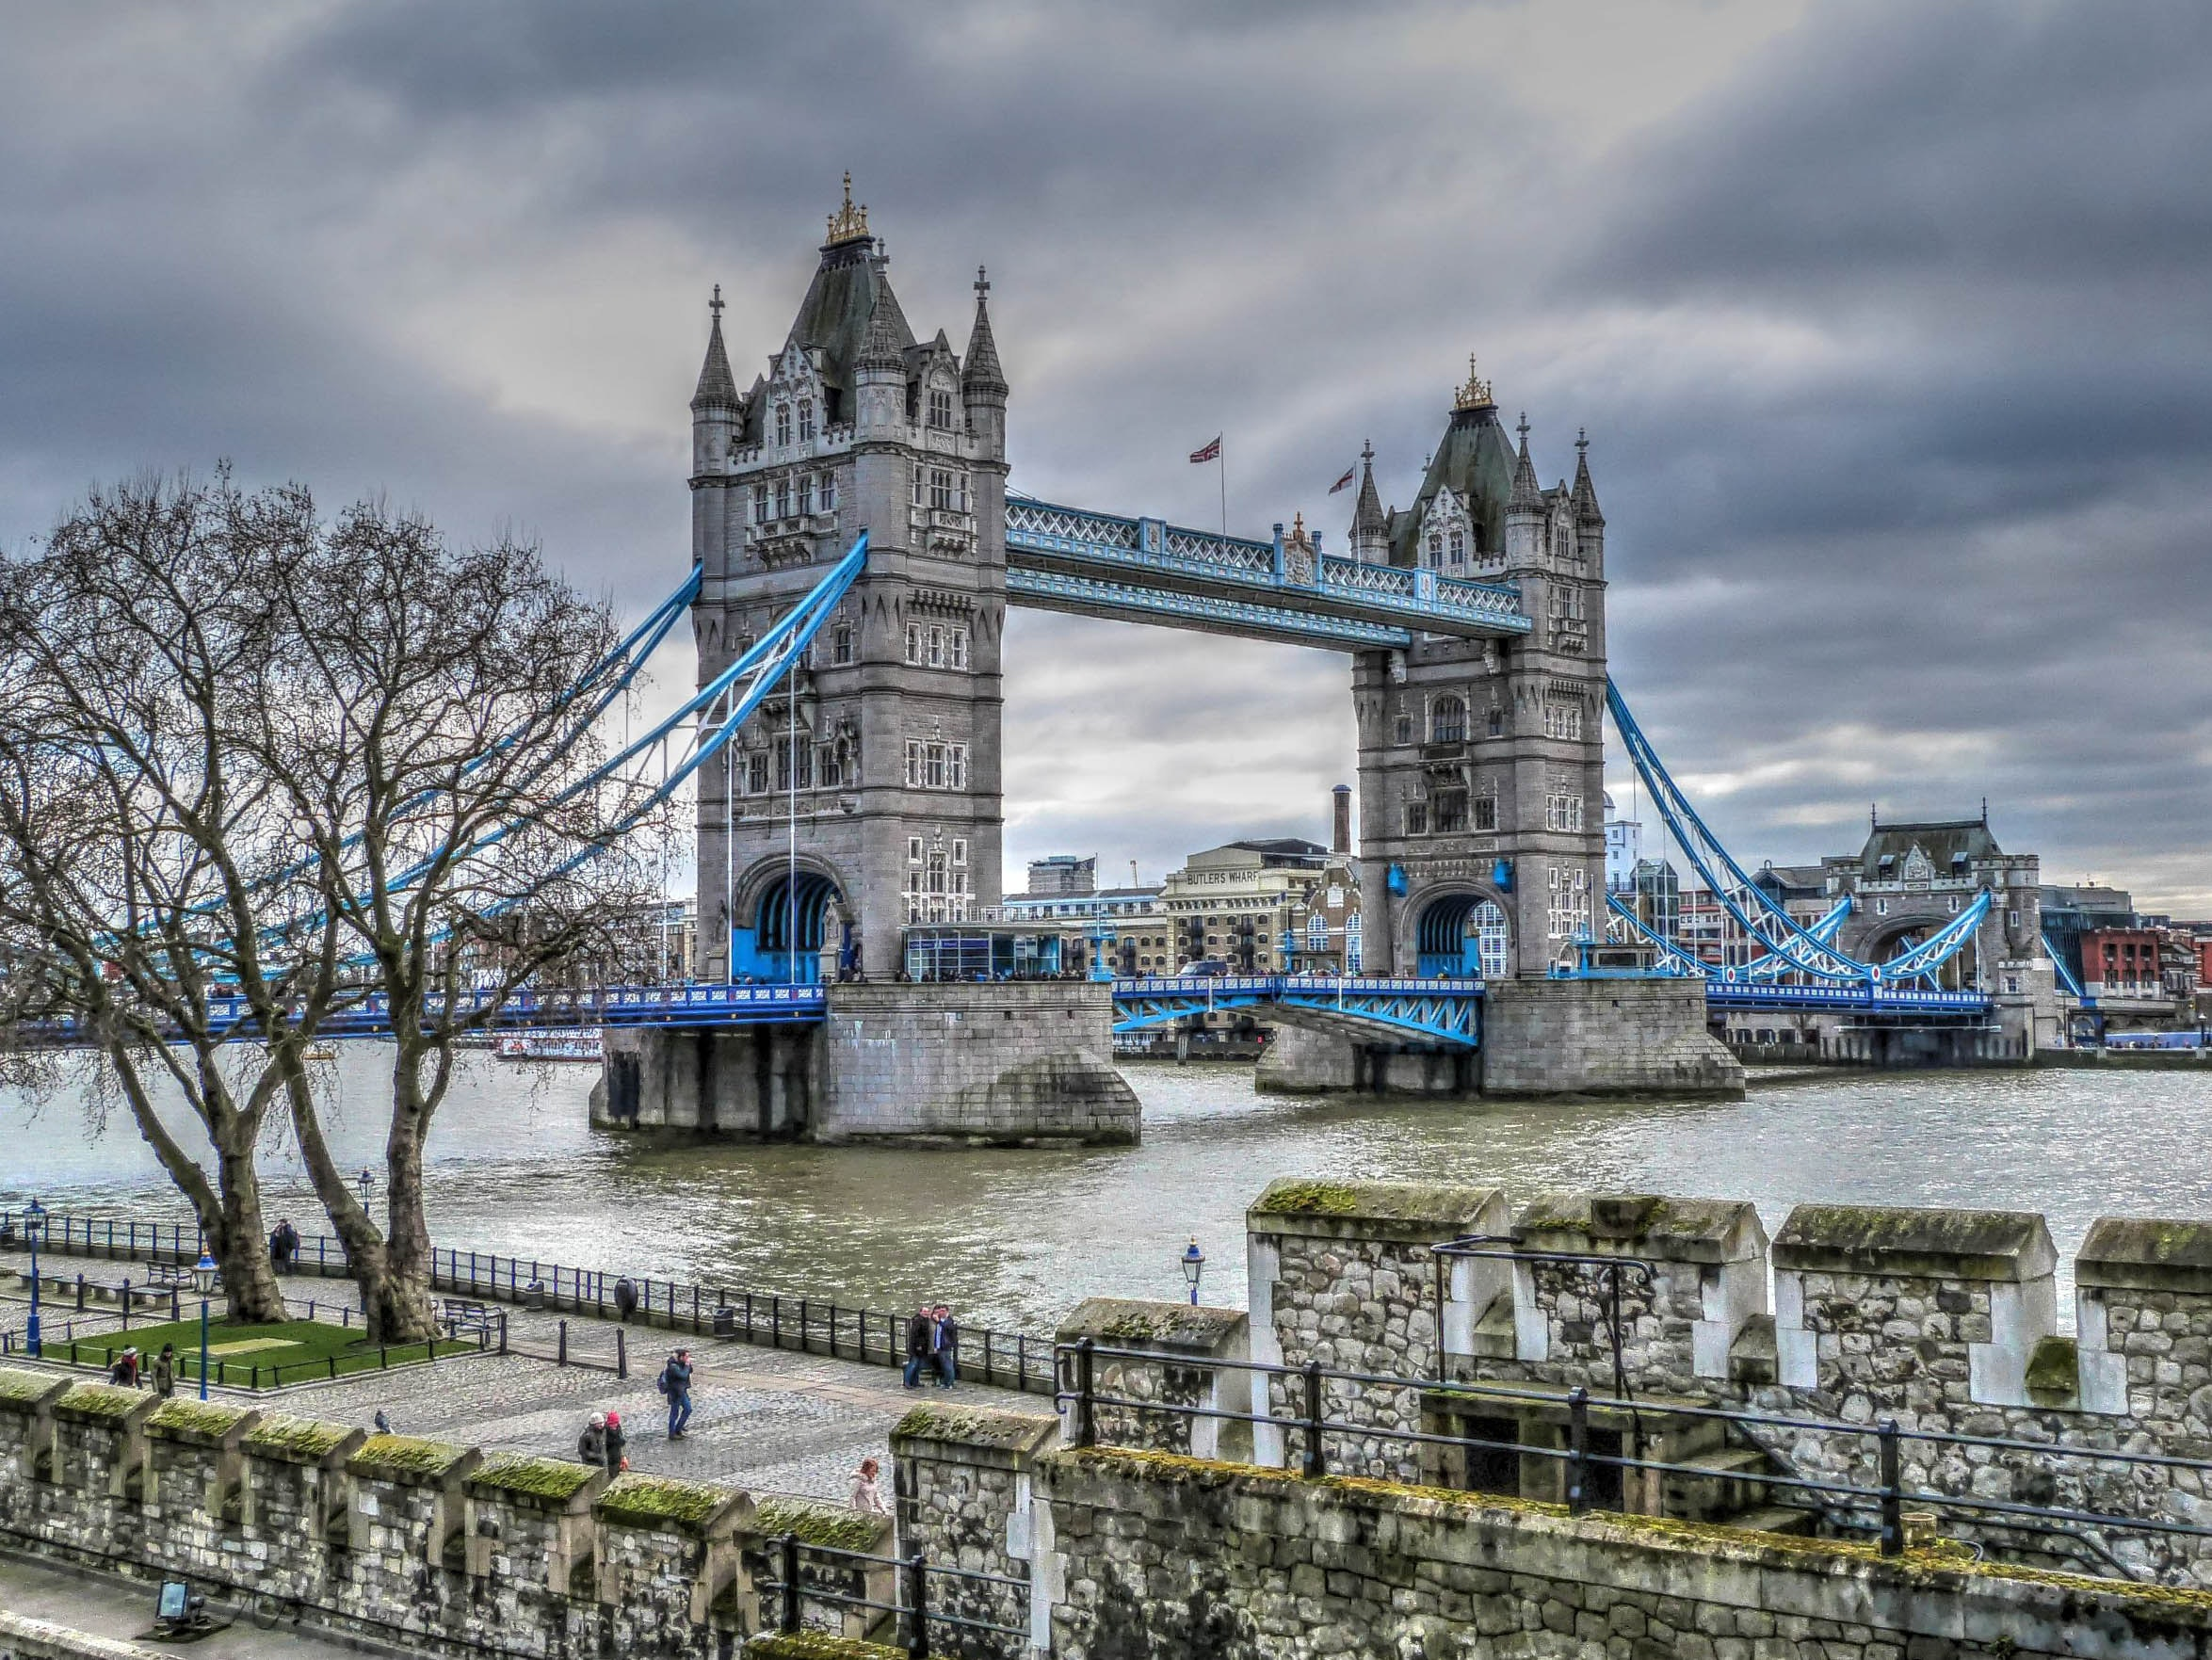 Tower bridge photo